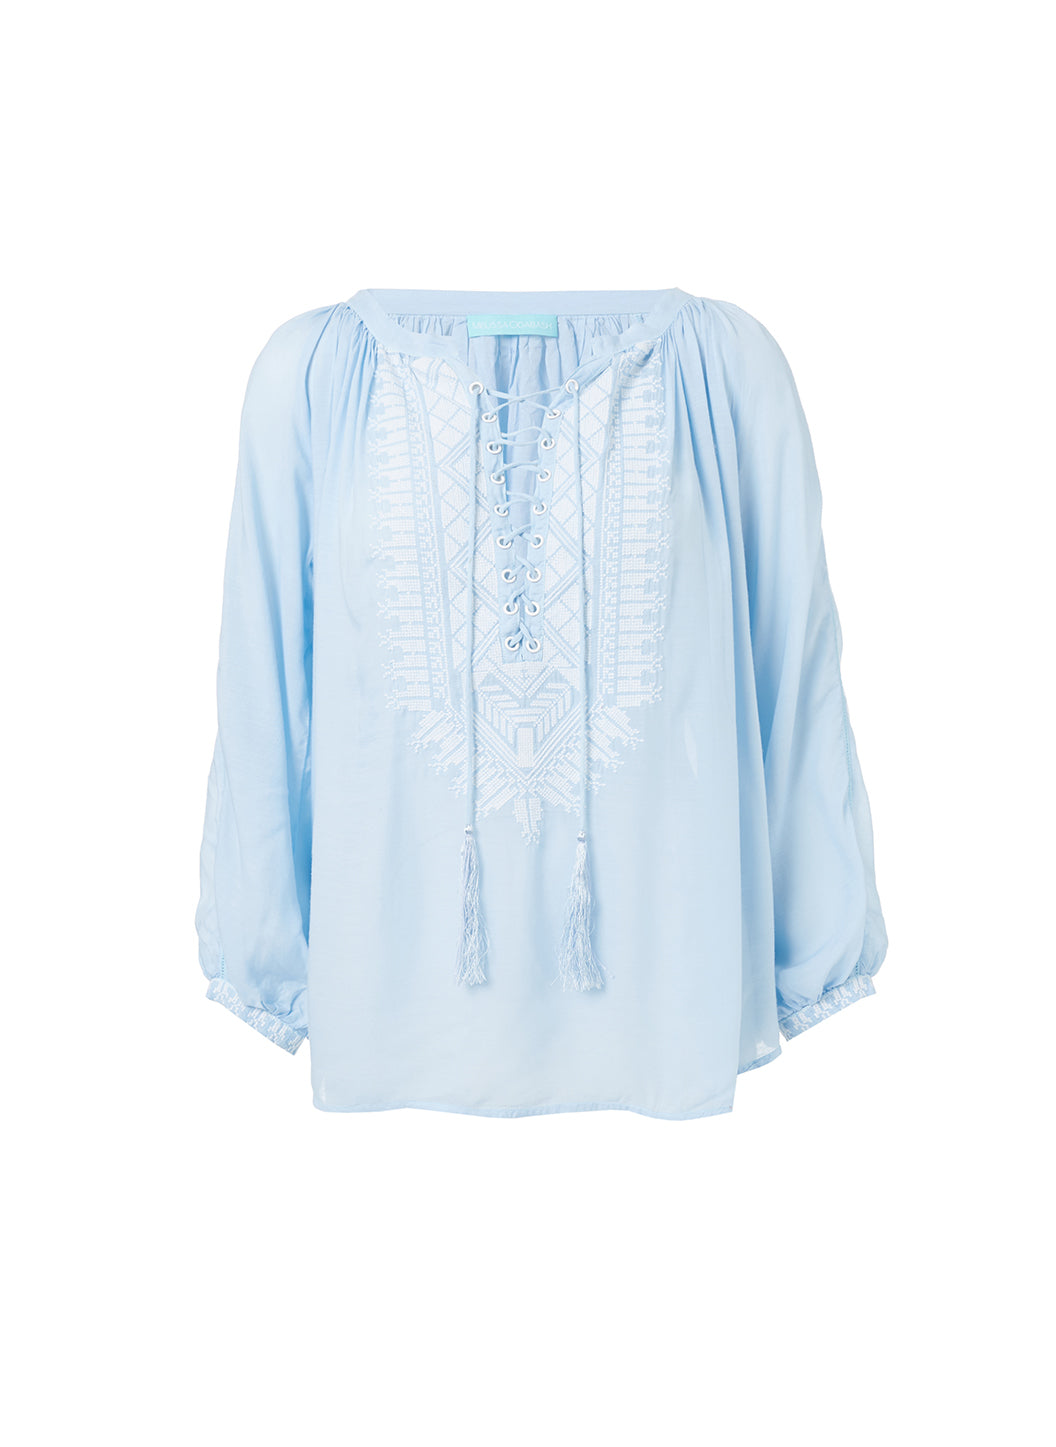 Simona Blue Lace-Up Embroidered Blouse - Melissa Odabash Tops & Bottoms